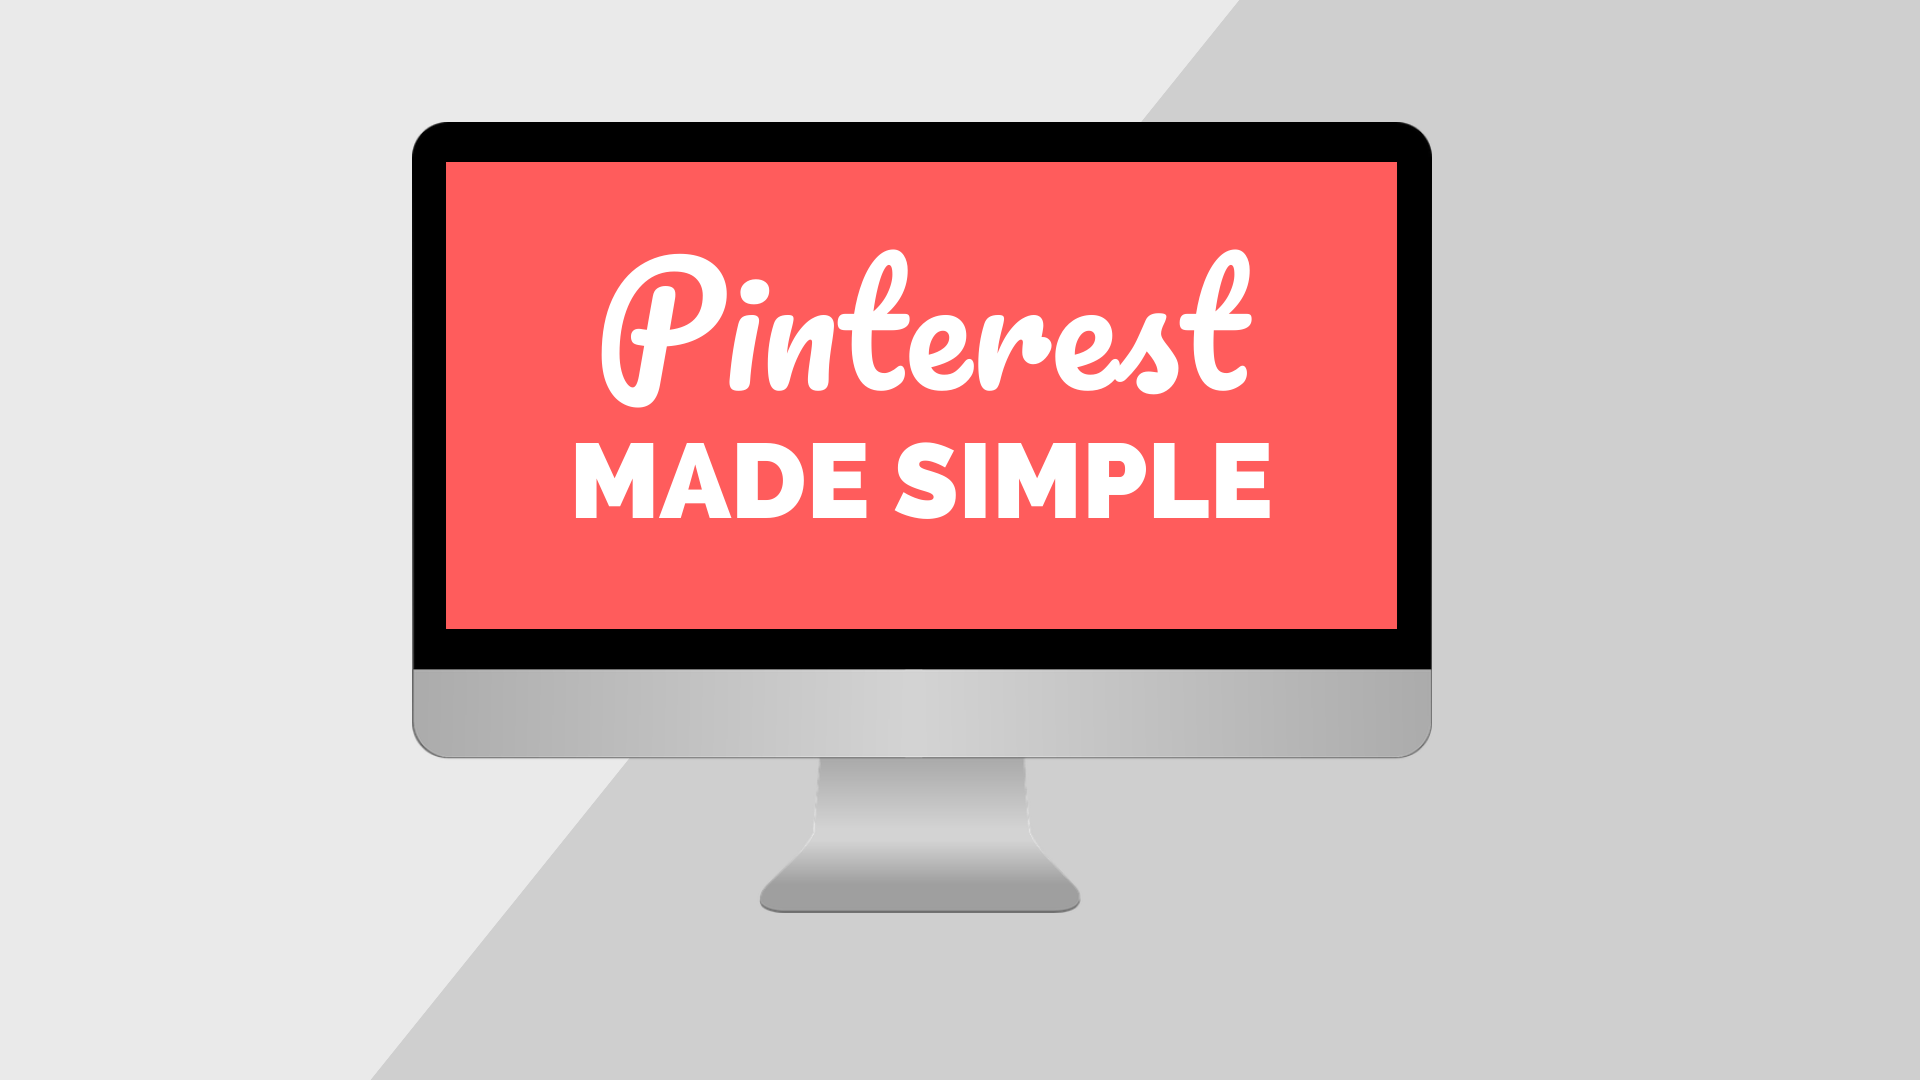 Pinterest made simple